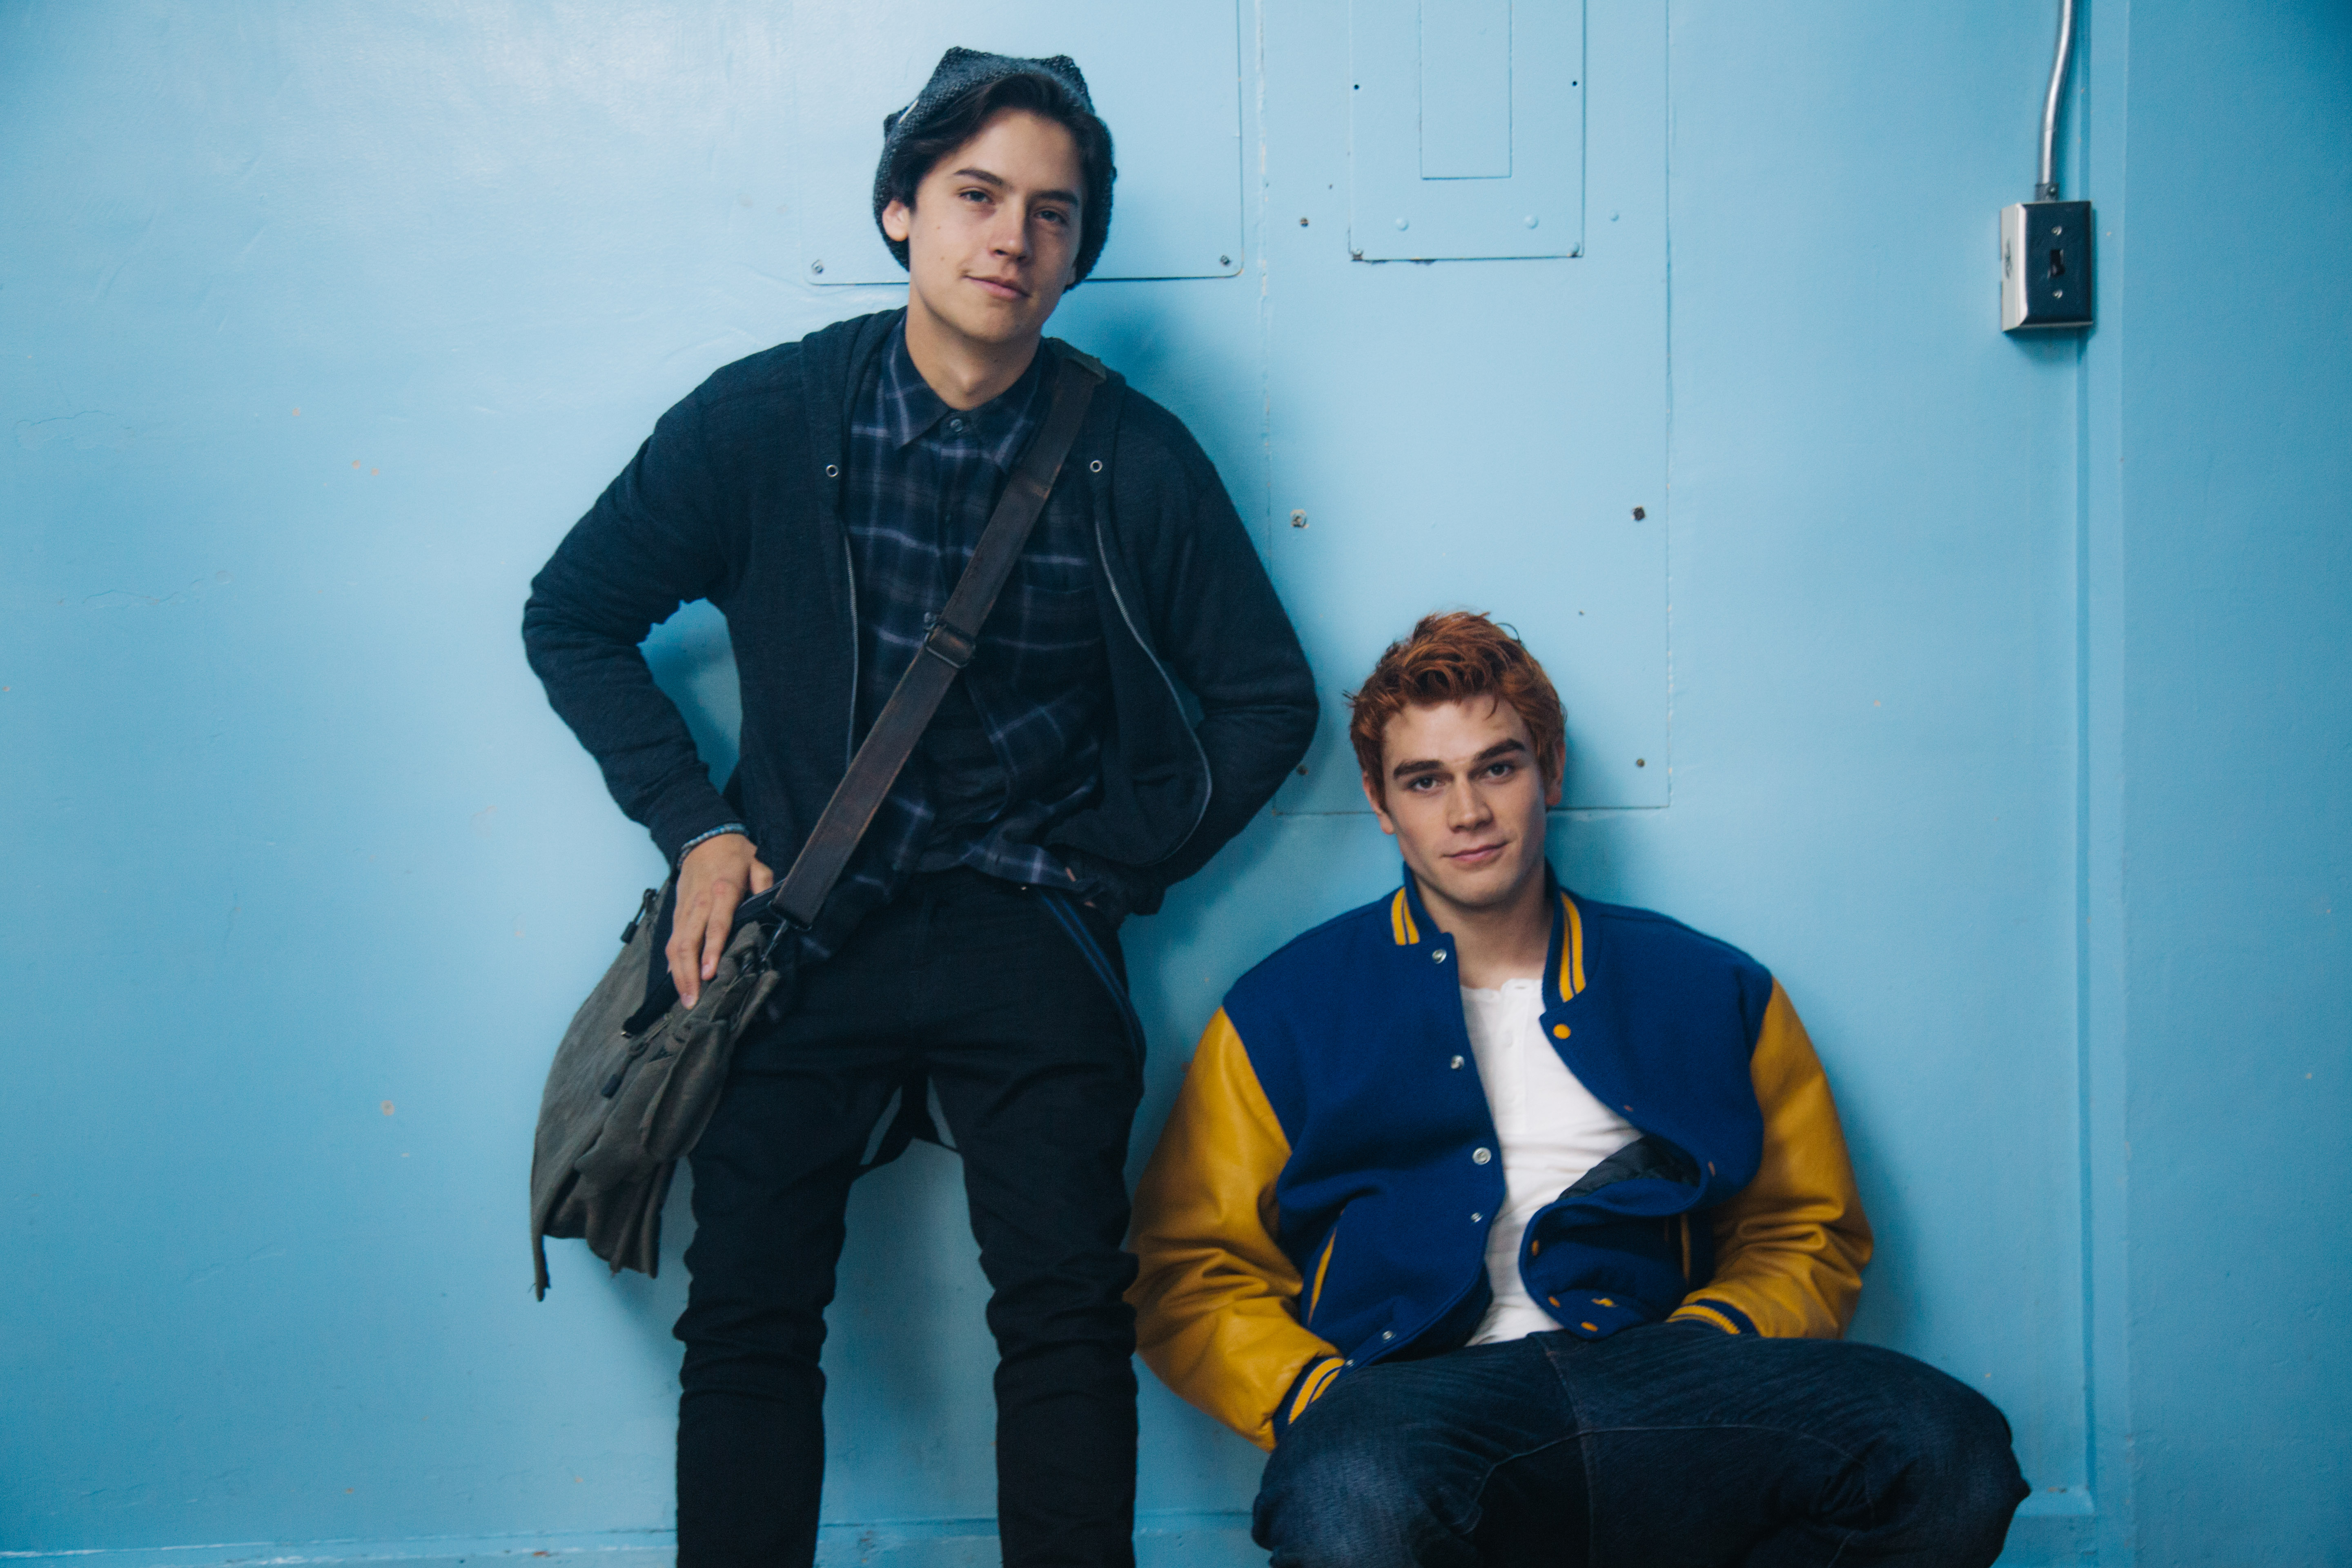 Archie Andrews Kj Apa And Jughead Cole Sprouse Hd Tv Shows